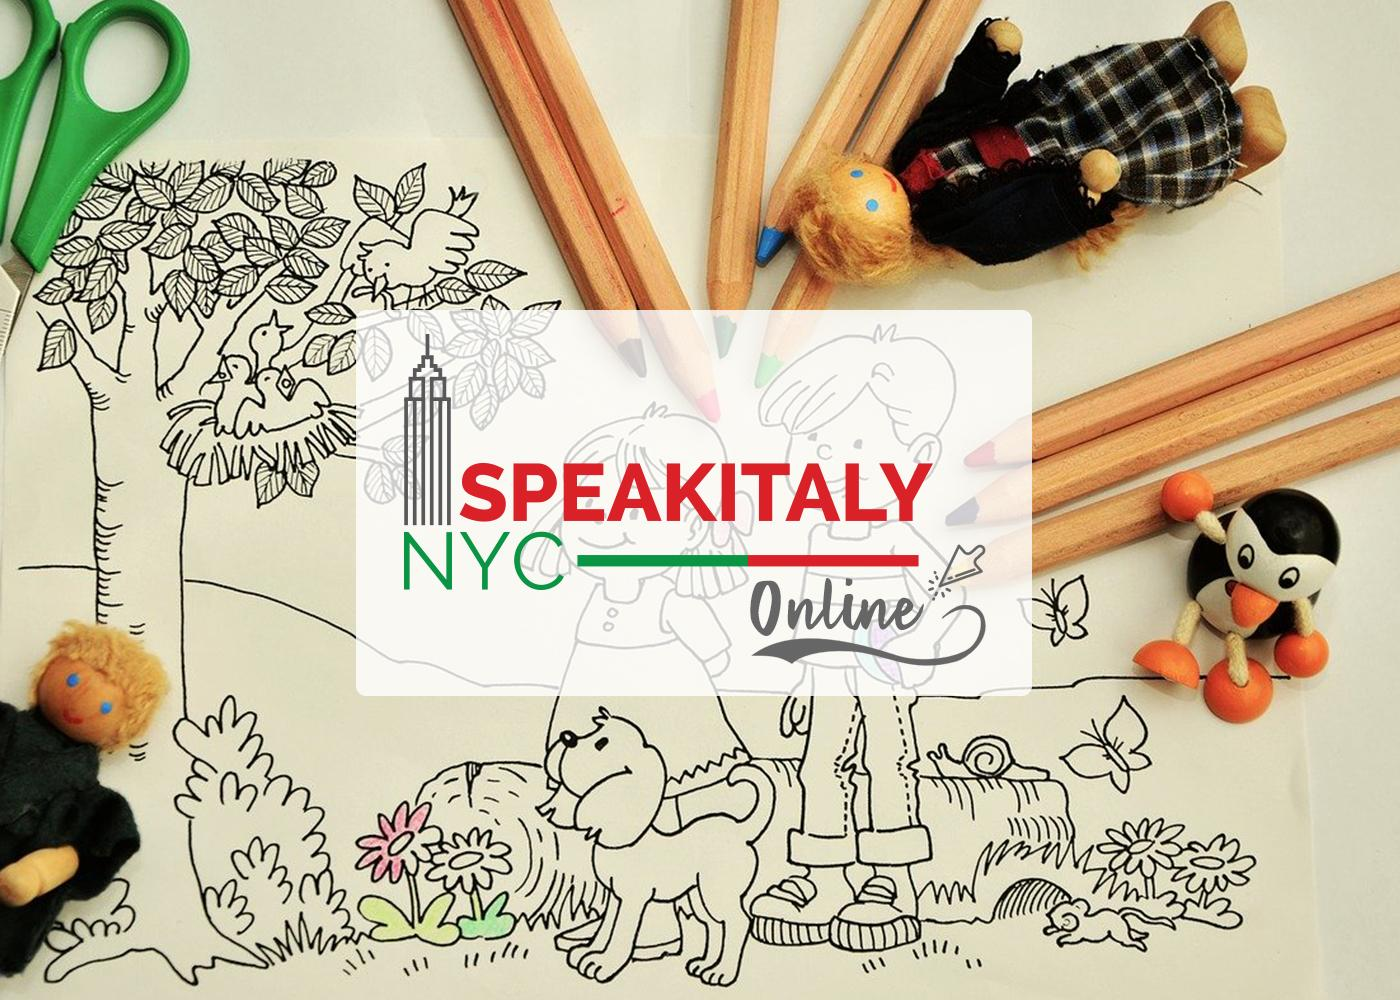 Italian Art and Crafts (Summer Edition) at Speakitaly NYC